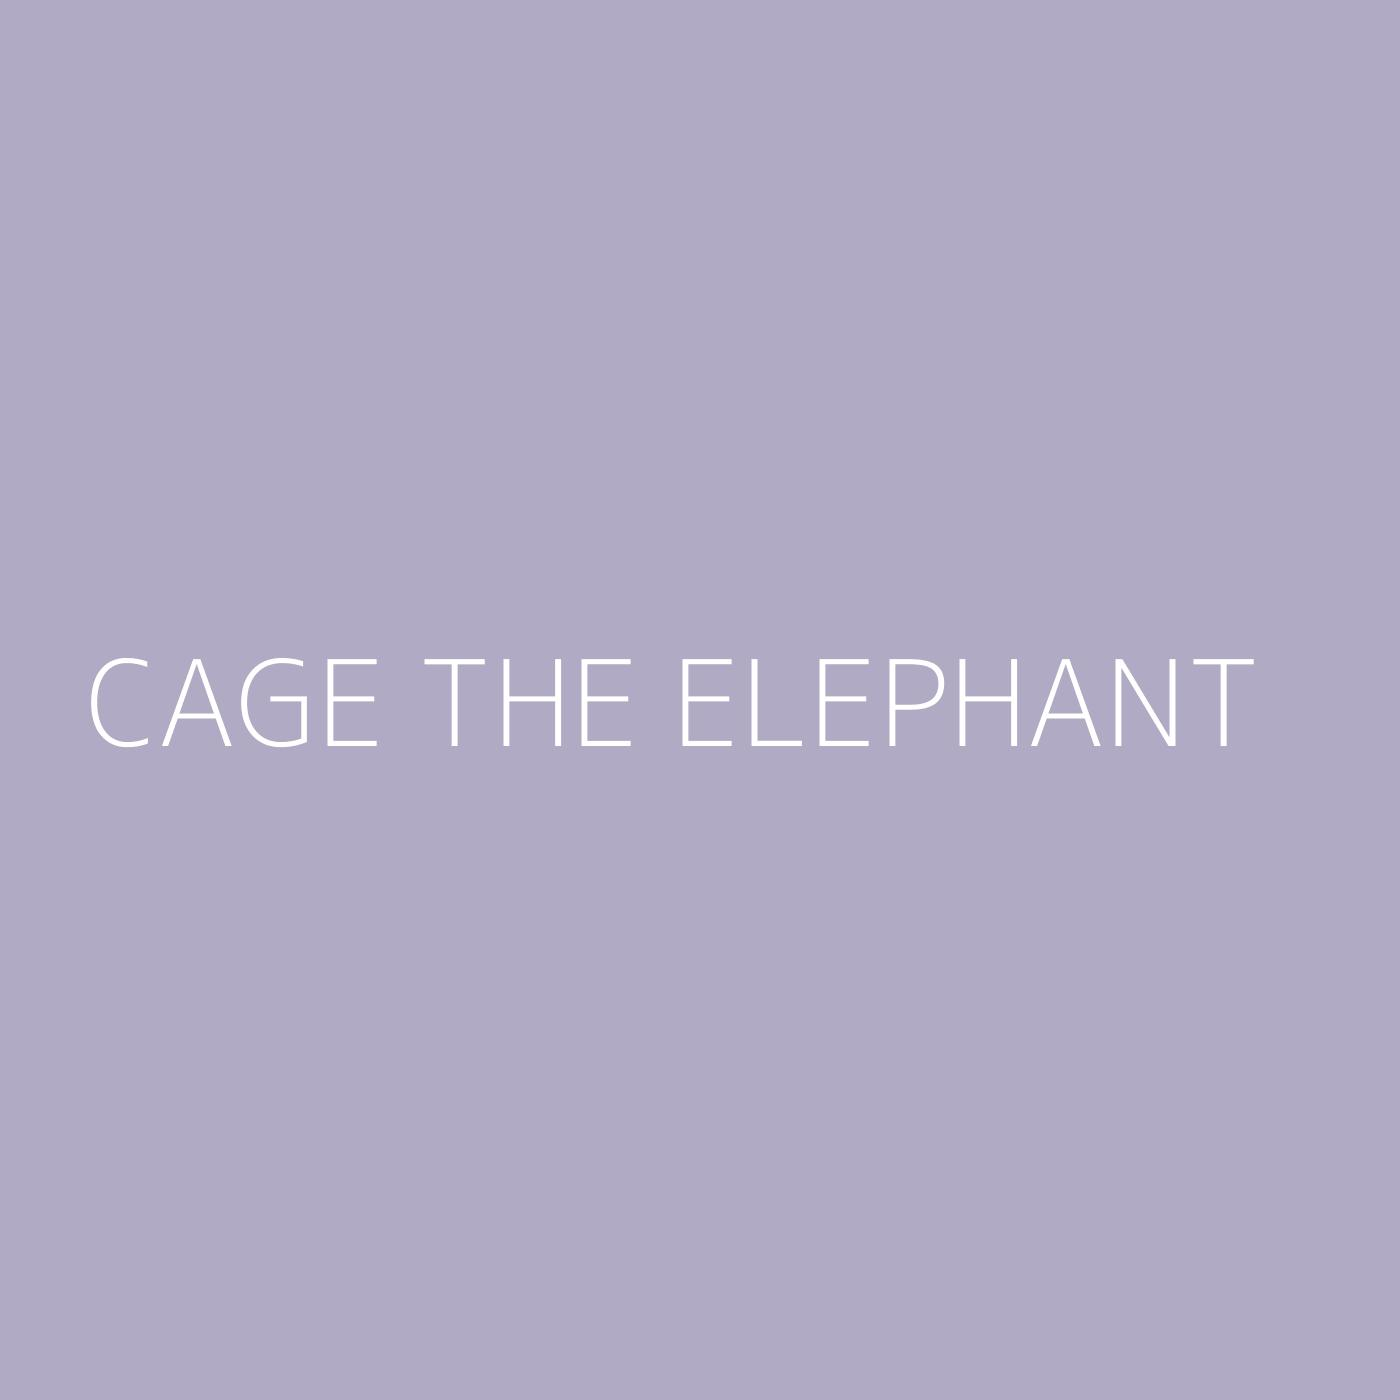 Cage The Elephant Playlist Artwork